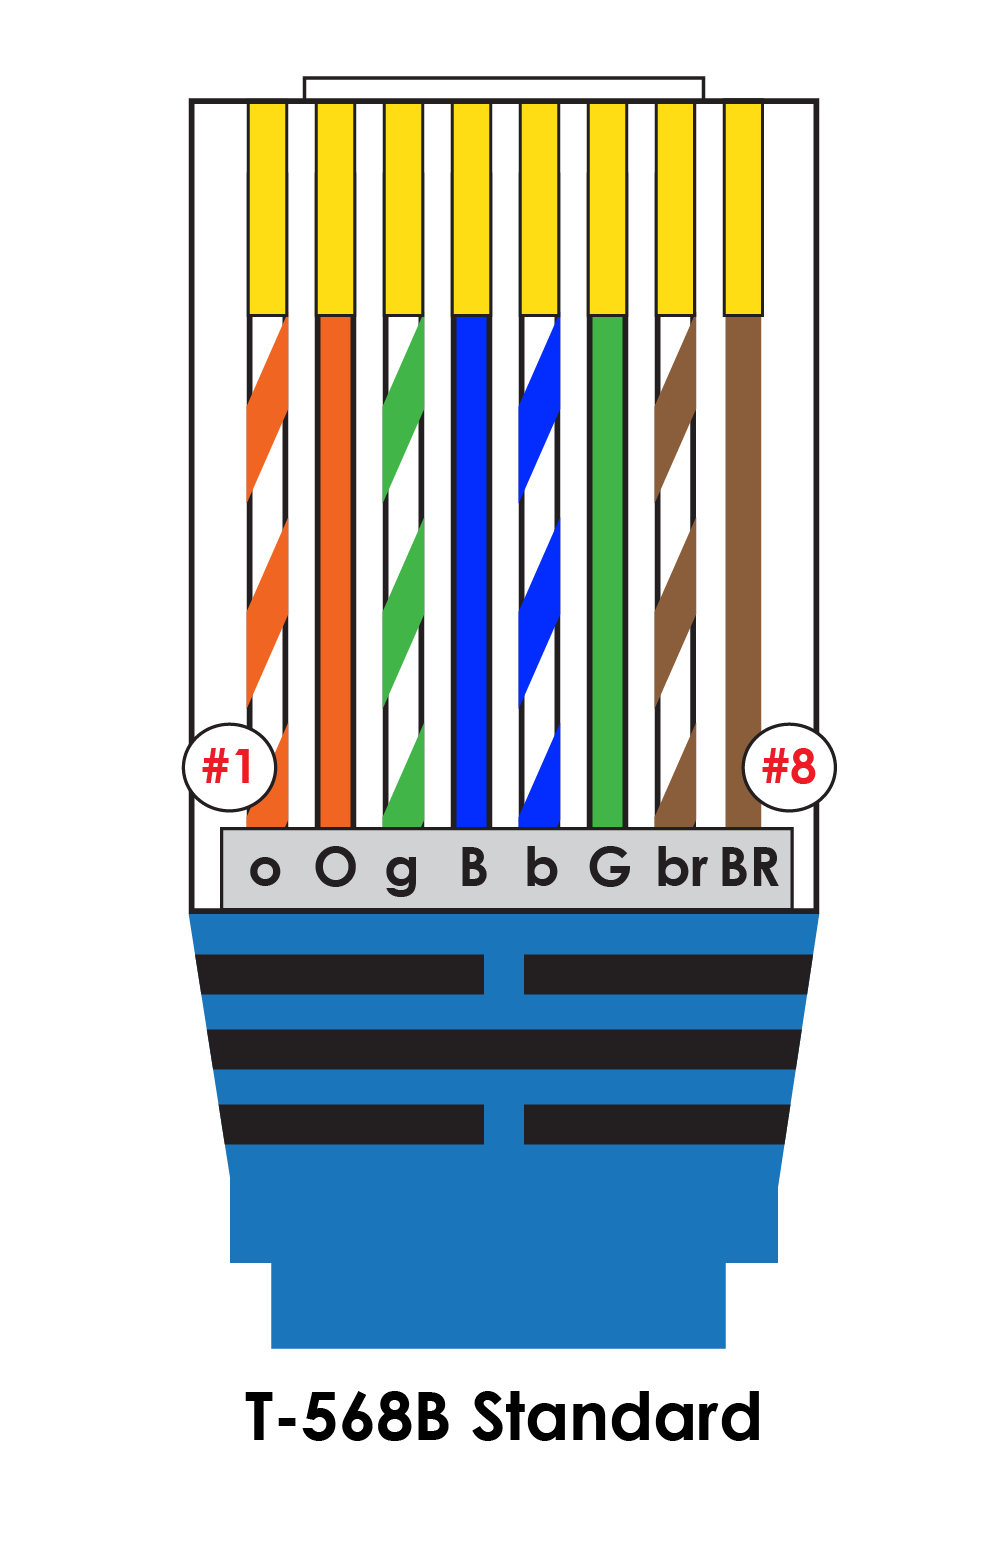 cat 5 to dual rj11 wiring diagram free picture vb 6072  cat 6 cable wiring diagram furthermore rj45 wall jack  cat 6 cable wiring diagram furthermore